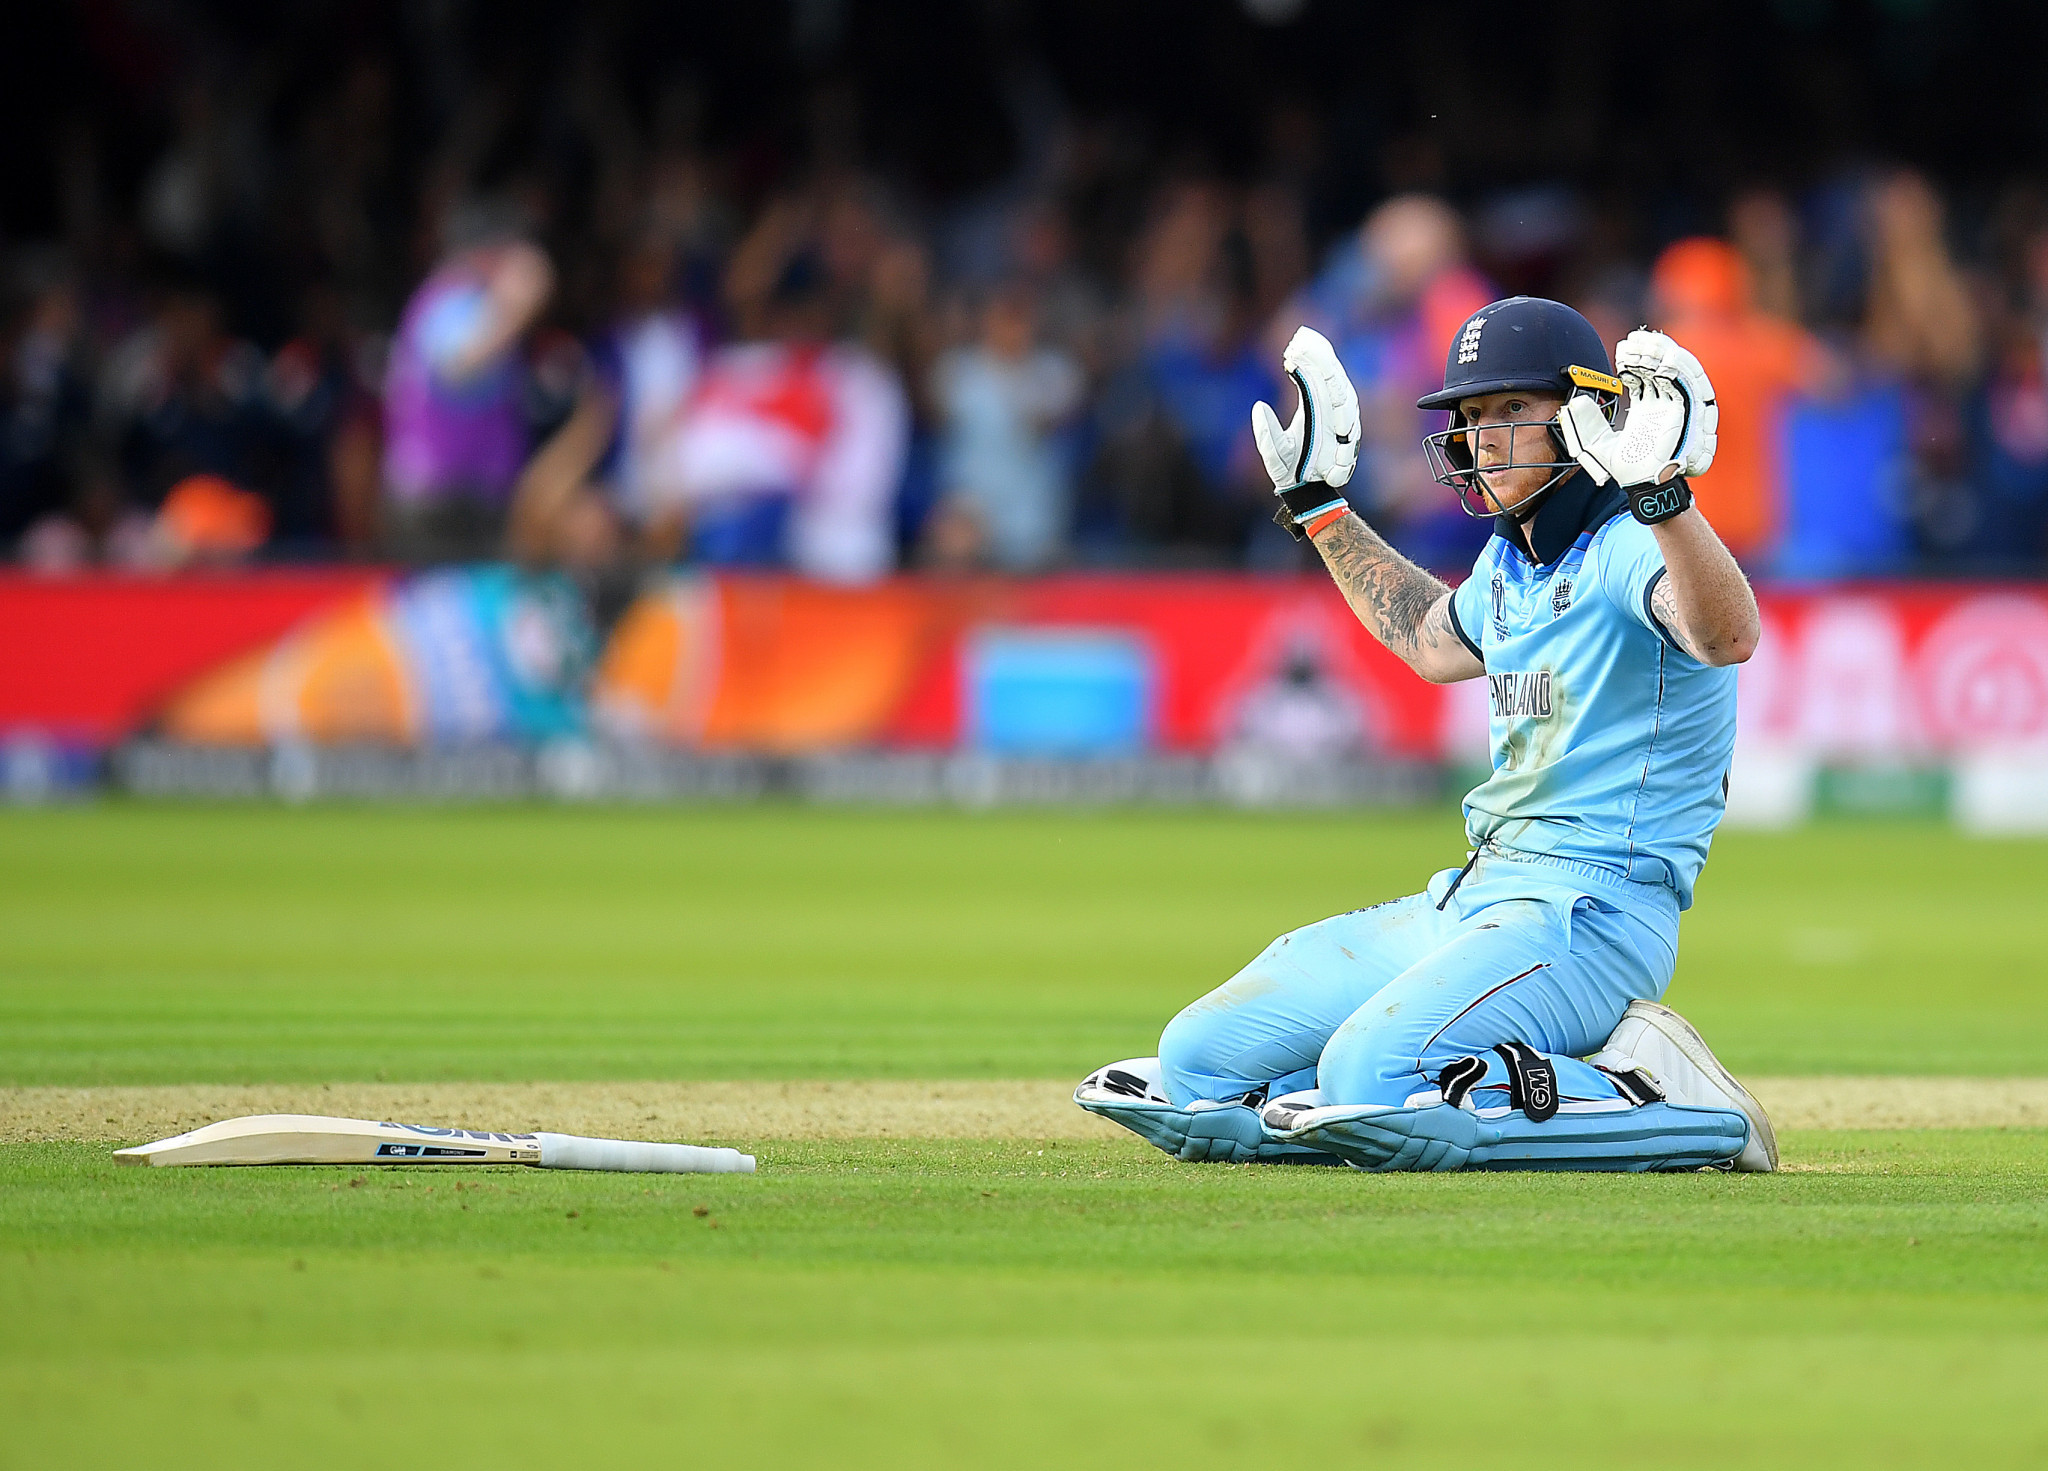 The Cricket World Cup final between England and New Zealand produced scarcely believable drama ©Getty Images